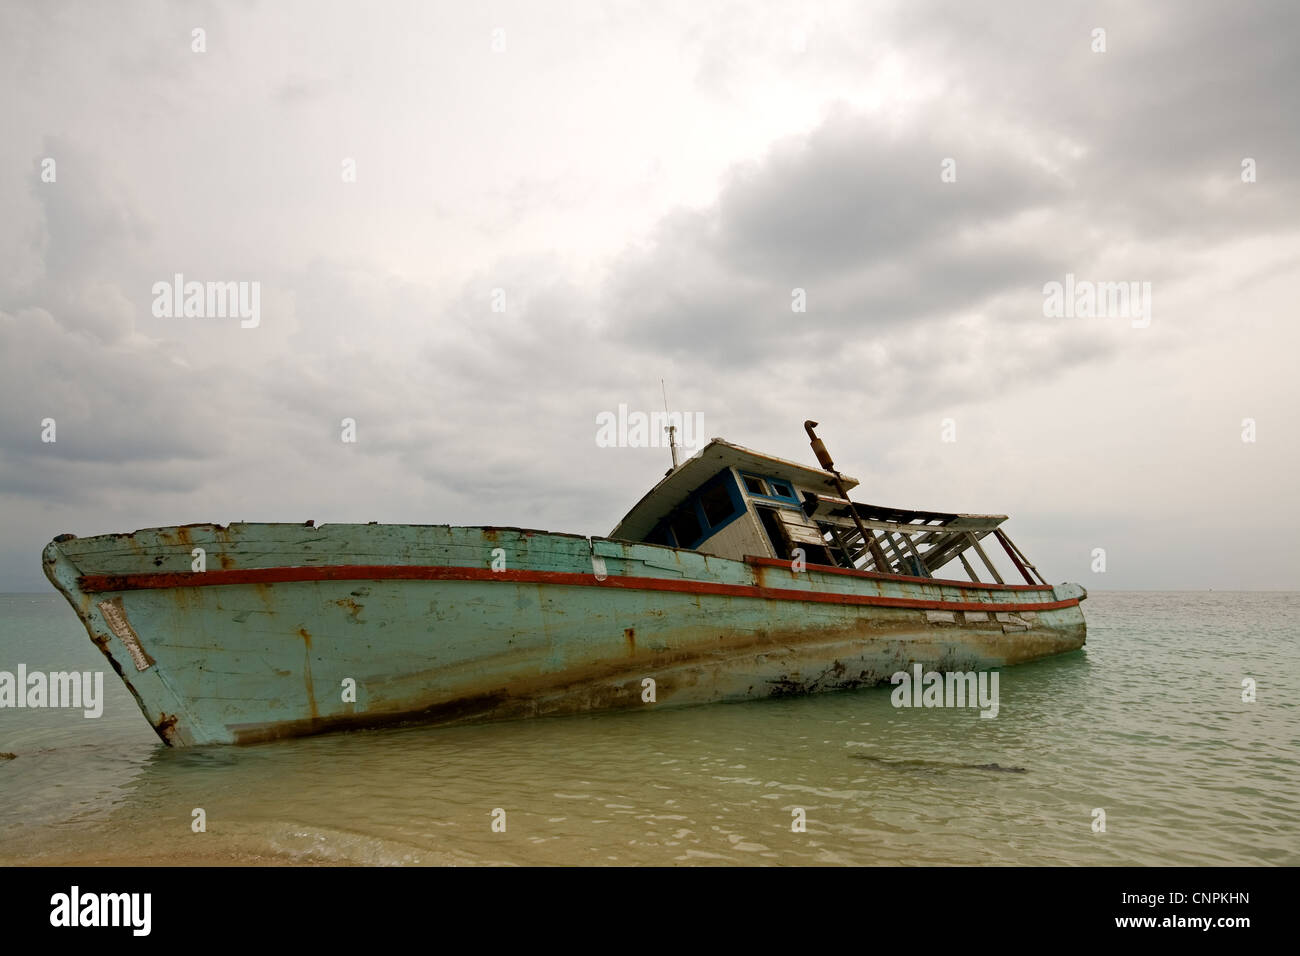 Rusty and forgotten boat on a shore - Stock Image